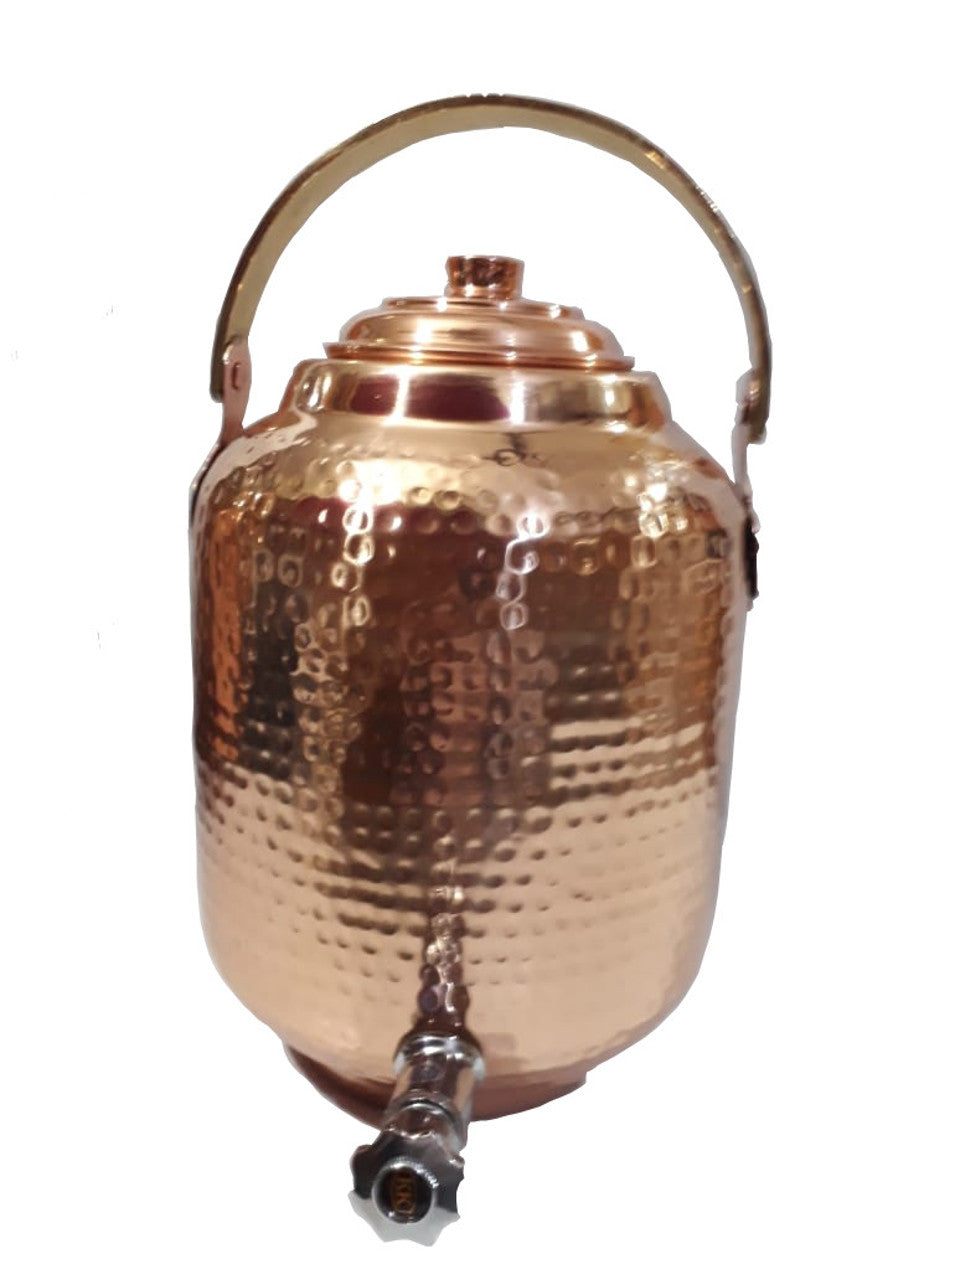 Copper Water Dispenser Seamless 1.7 gal 6.5 Ltr 218 oz Pot Storage Tank With Tap Kitchen Benefit Yoga Home Hotel